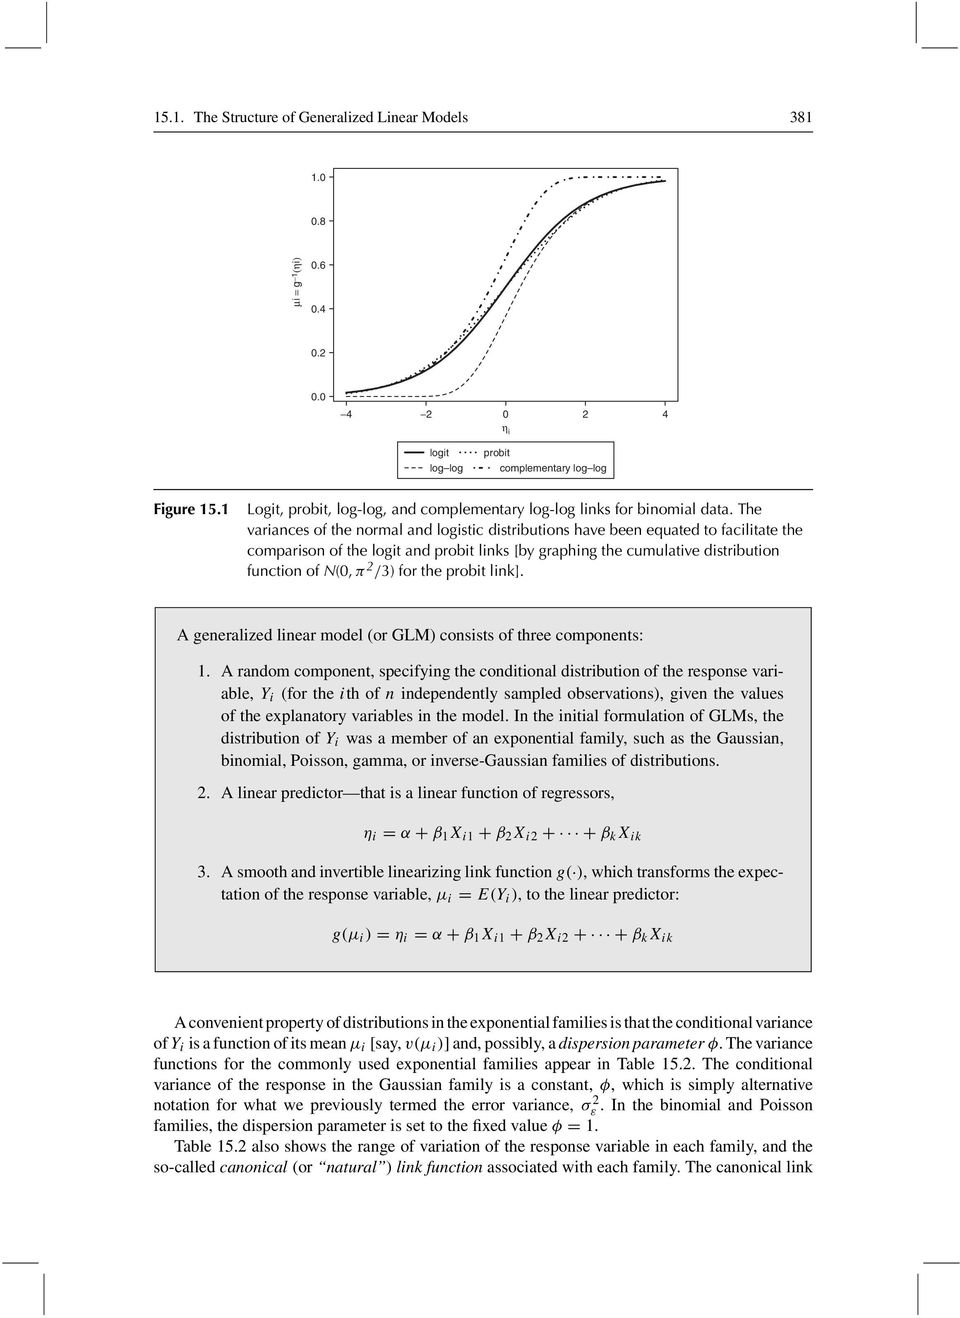 151 the structure of generalized linear models pdf the variances of the normal and logistic distributions have been equated to facilitate the comparison of publicscrutiny Choice Image